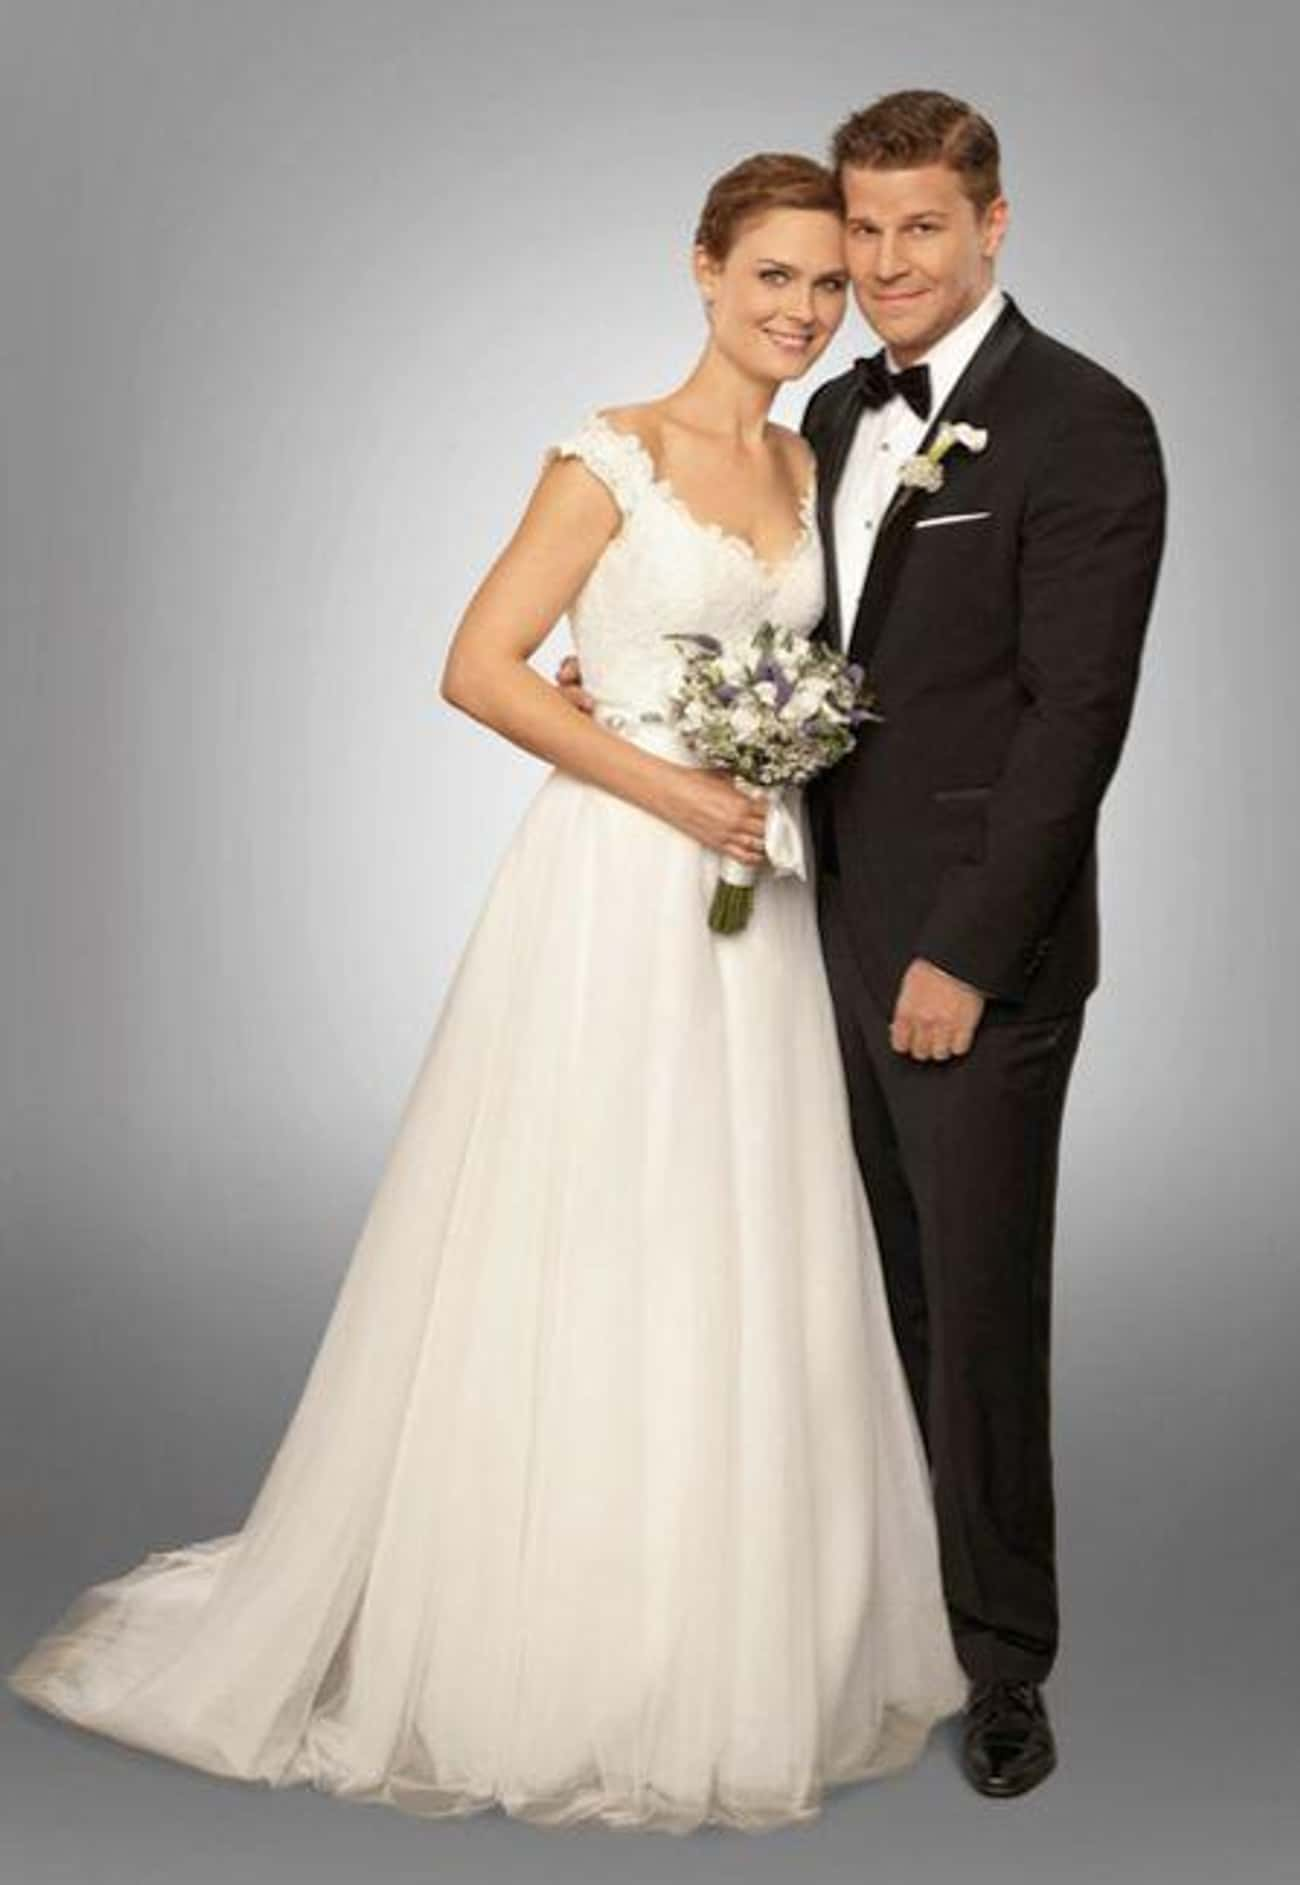 """Temperance """"Bones"""" Brennan is listed (or ranked) 4 on the list The 36 Best Wedding Dresses in the History of Television"""